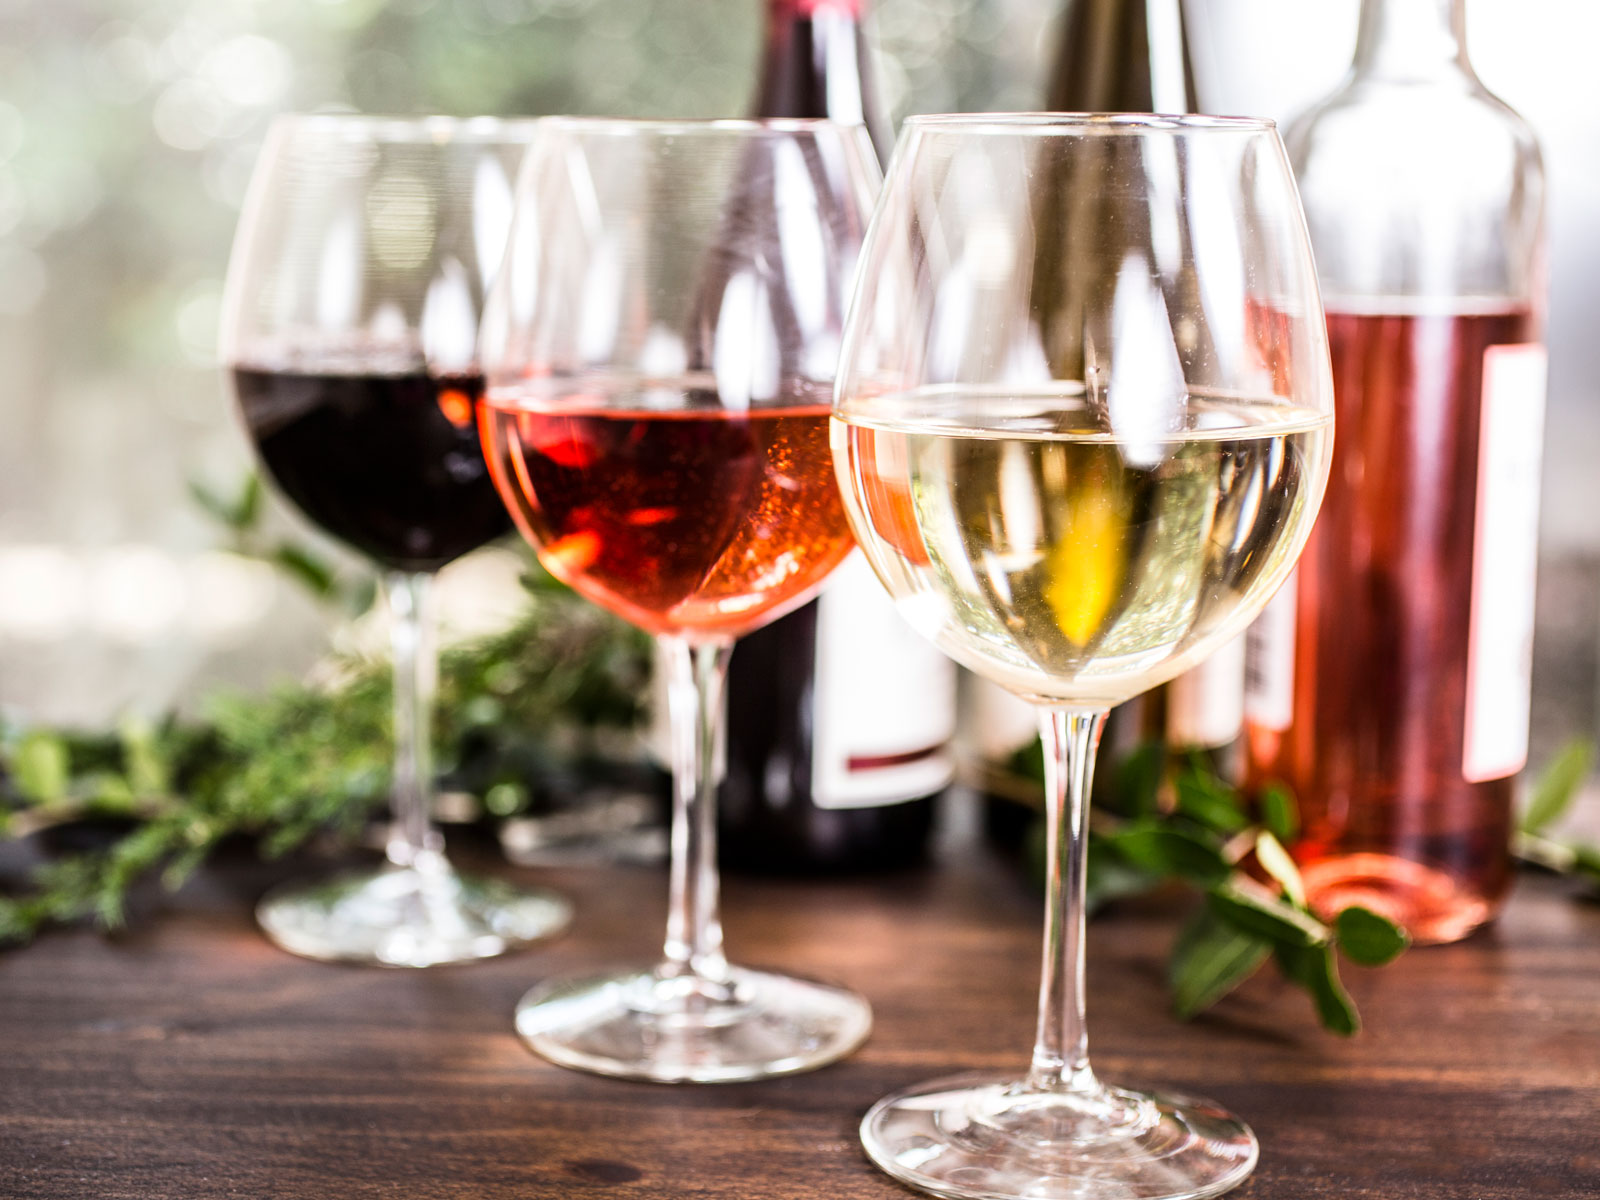 America's Favorite Red and White Wine Varieties, According to YouGov